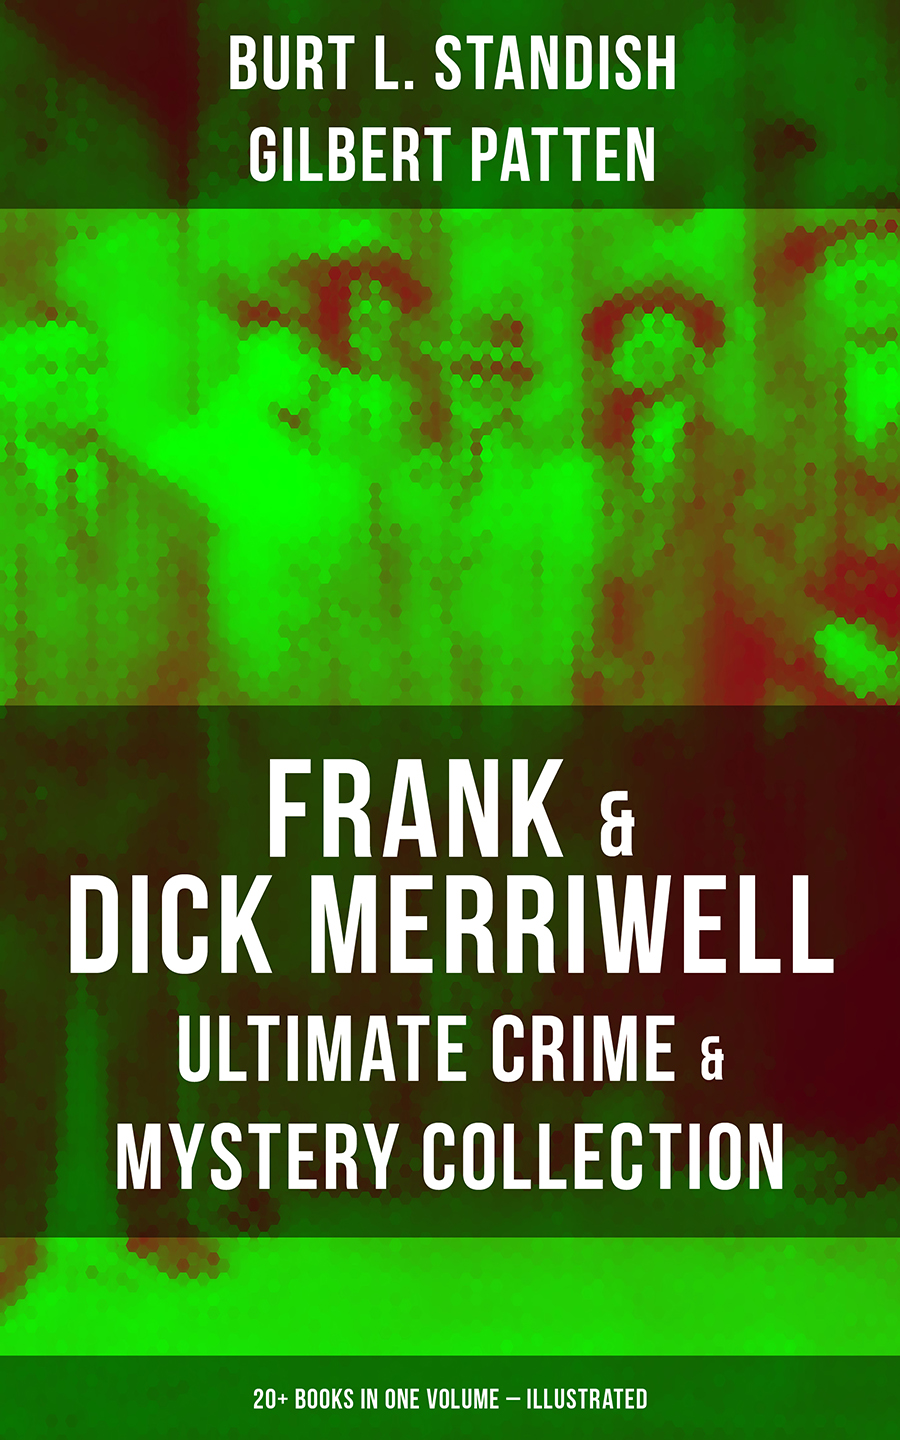 FRANK & DICK MERRIWELL – Ultimate Crime & Mystery Collection: 20+ Books in One Volume (Illustrated) ( Gilbert Patten  )